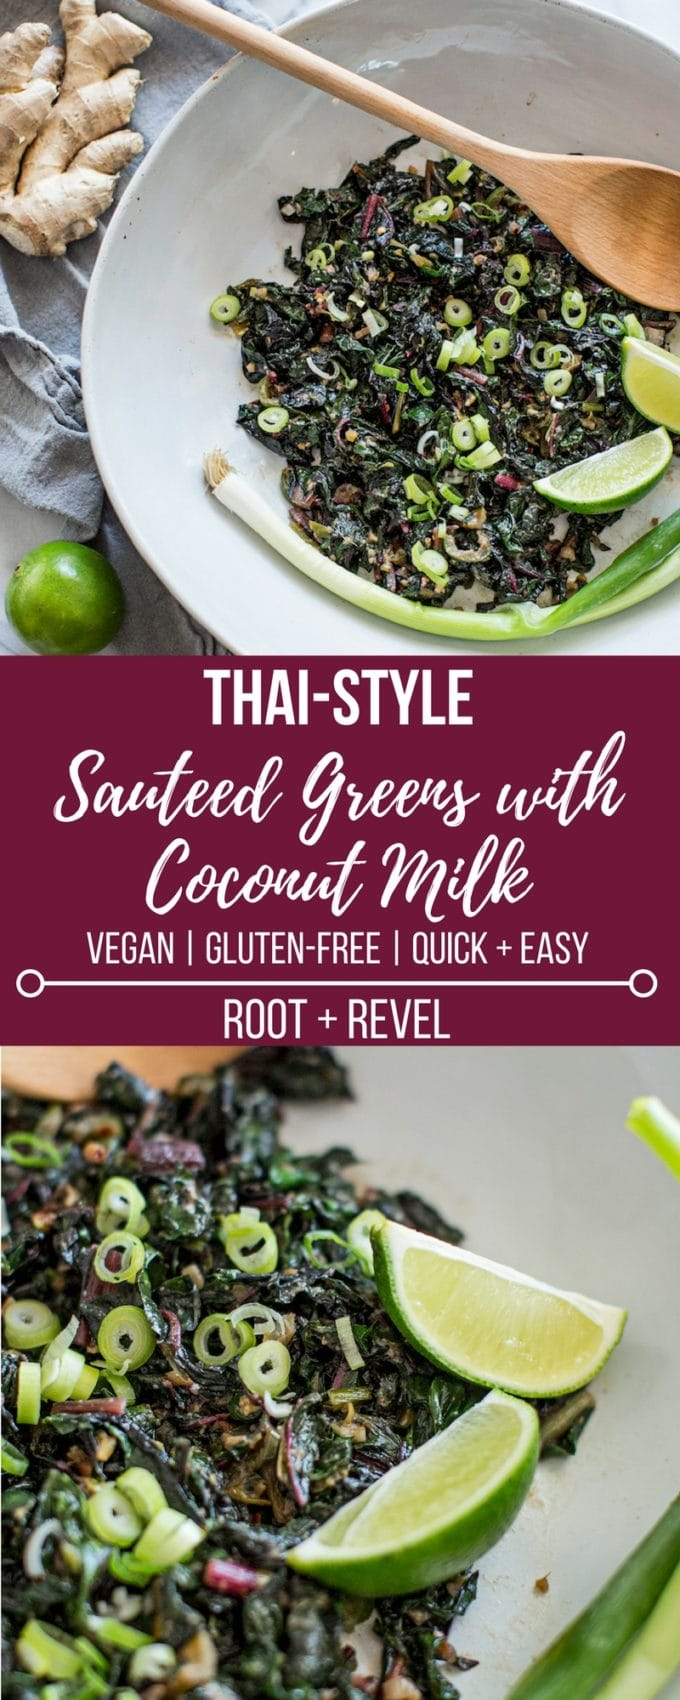 This quick and easy recipe for Thai-style sauteed greens with coconut milk is a super healthy and nutritious side dish! It can be made with swiss chard, collard greens, kale or spinach and gets a delicious Asian zing from fish sauce and chiles.